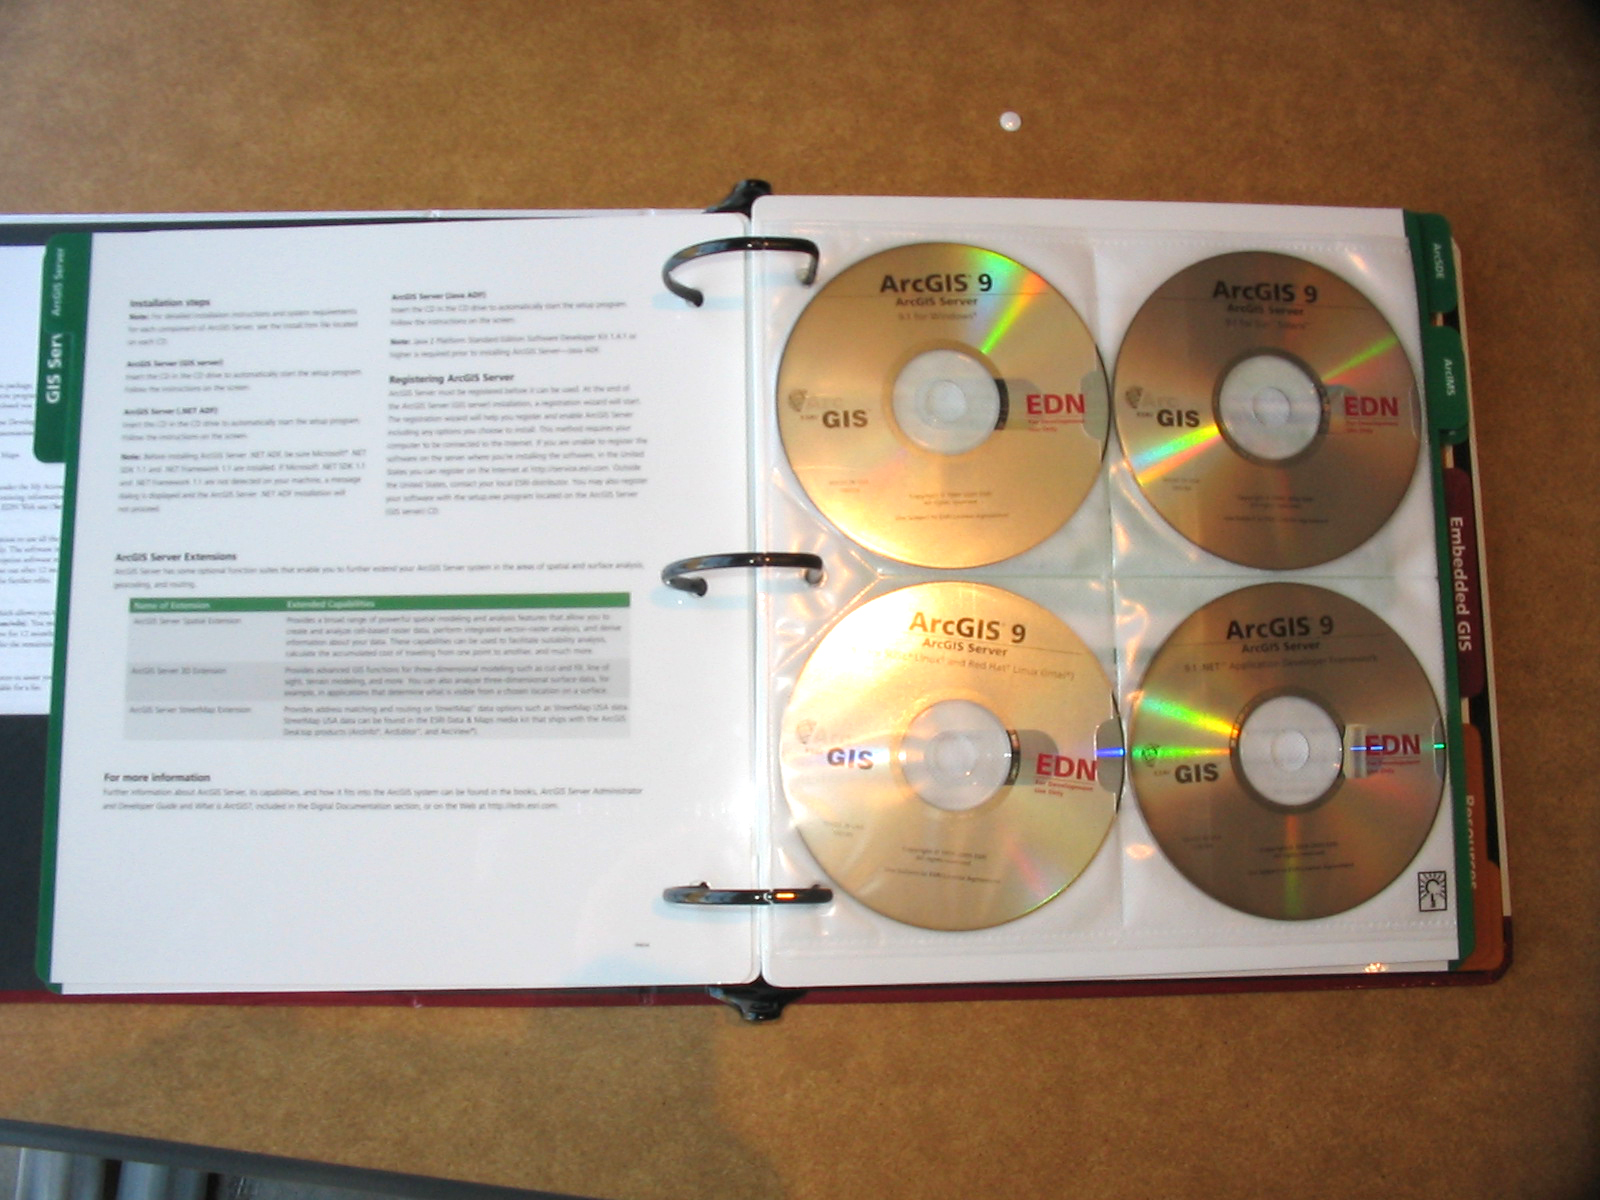 EDN GIS Servers CDs